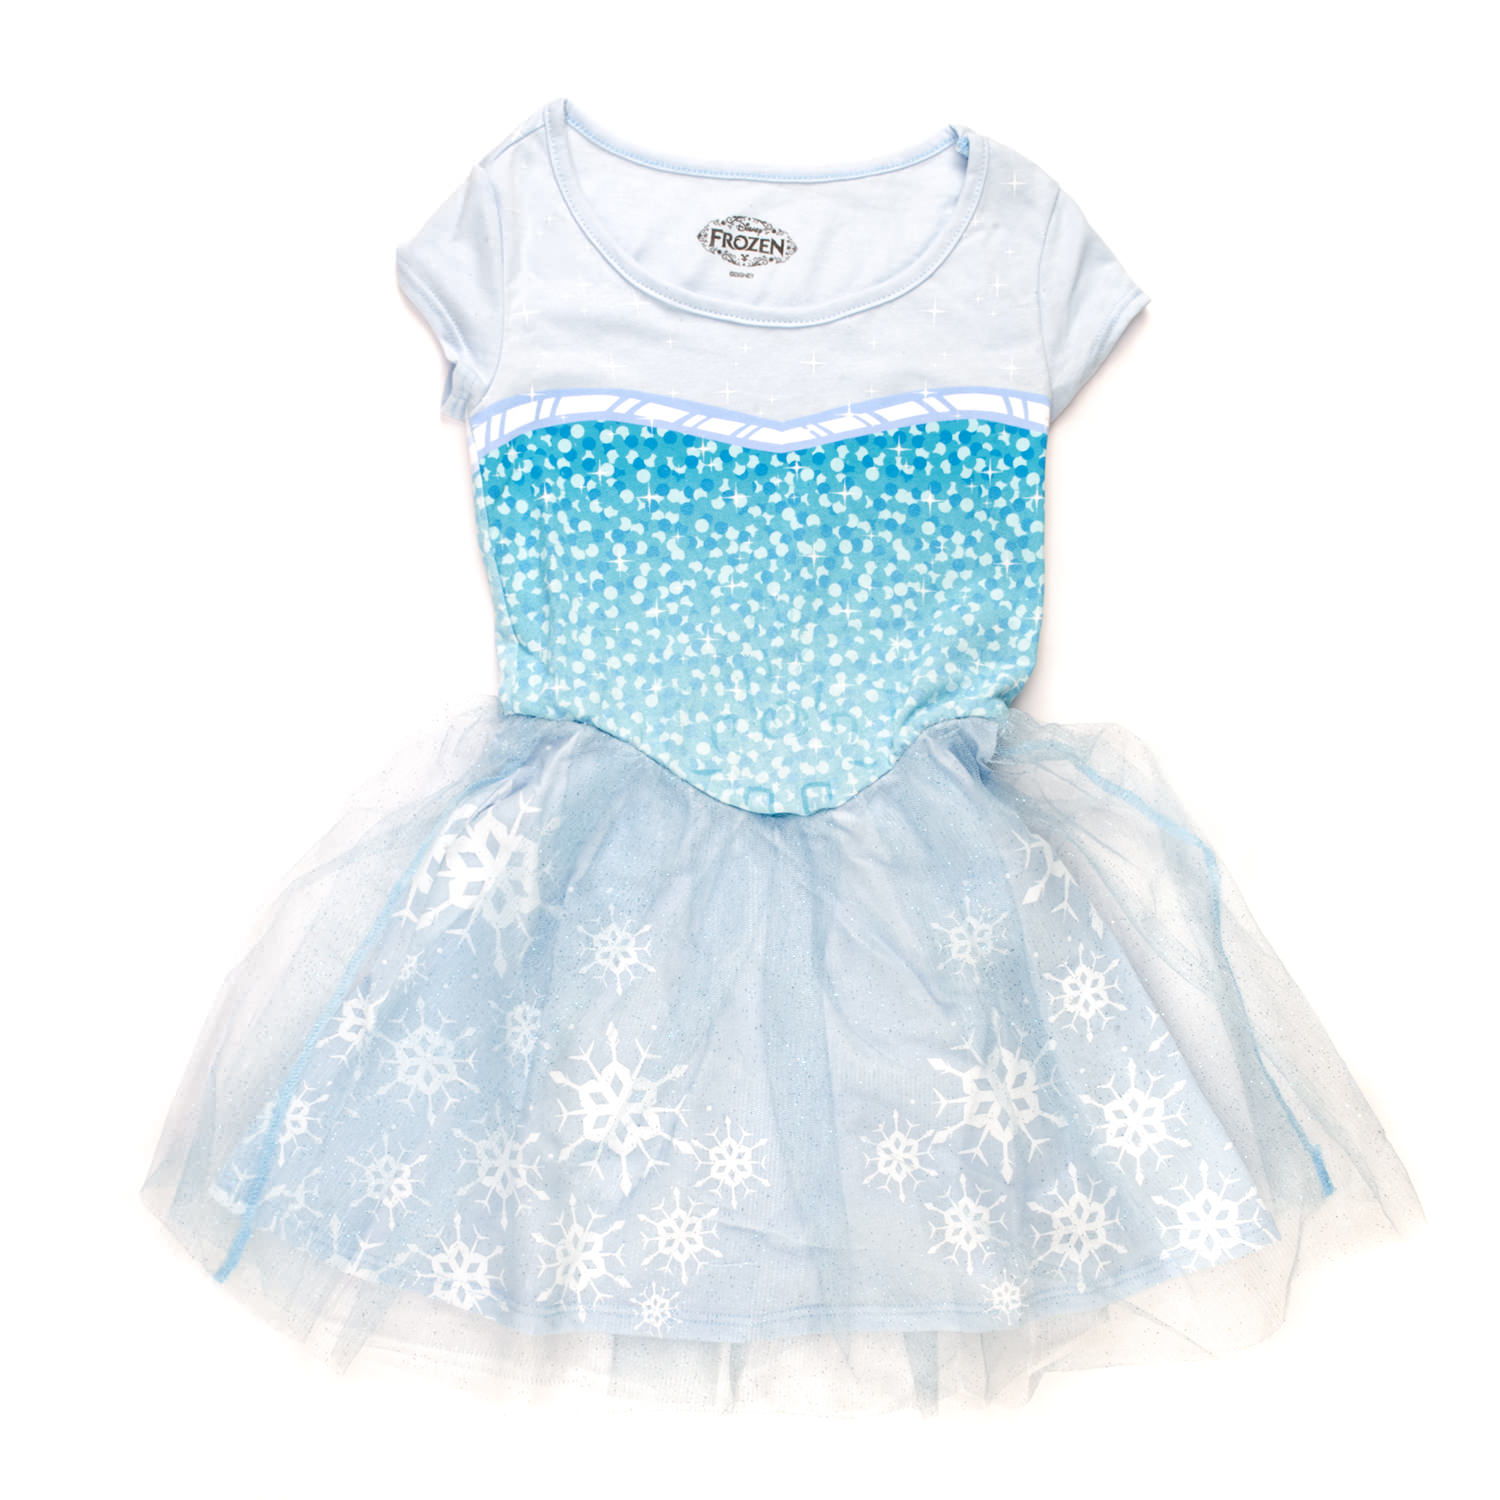 "Disney's ""I Am Elsa"" Girls Skater Dress X-Small"